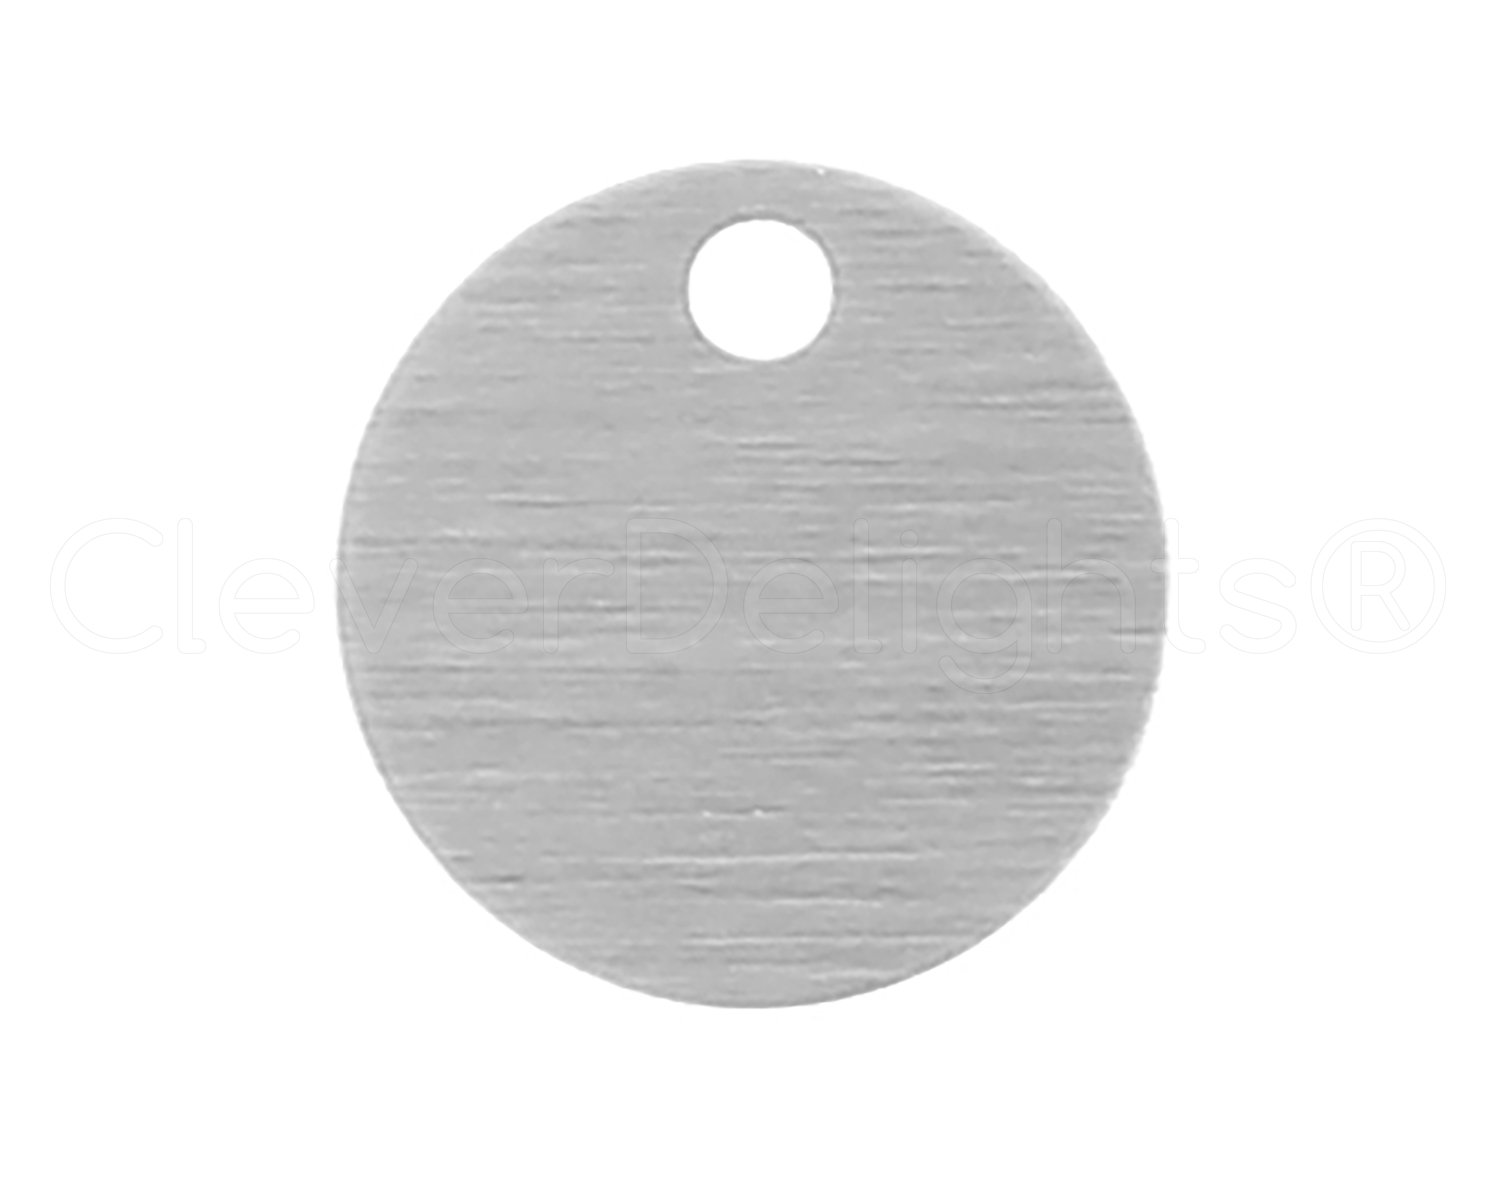 22 Gauge Aluminum .025 Circle Discs Tags CleverDelights 1//2 Round Stamping Blanks 50 Pack